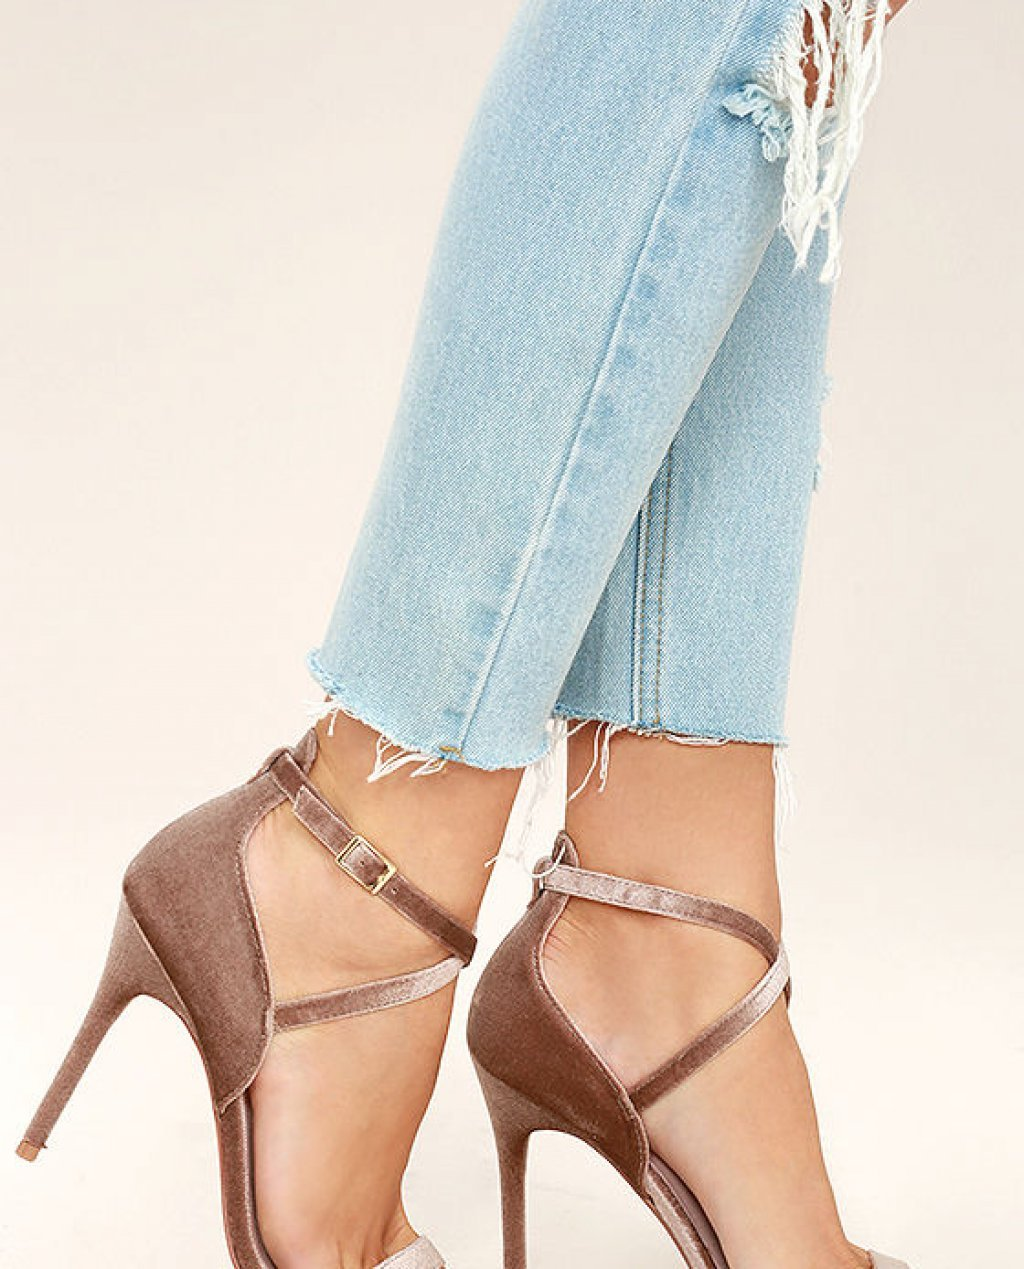 Chinese Laundry Lavelle Nude Velvet High Heel Sandals